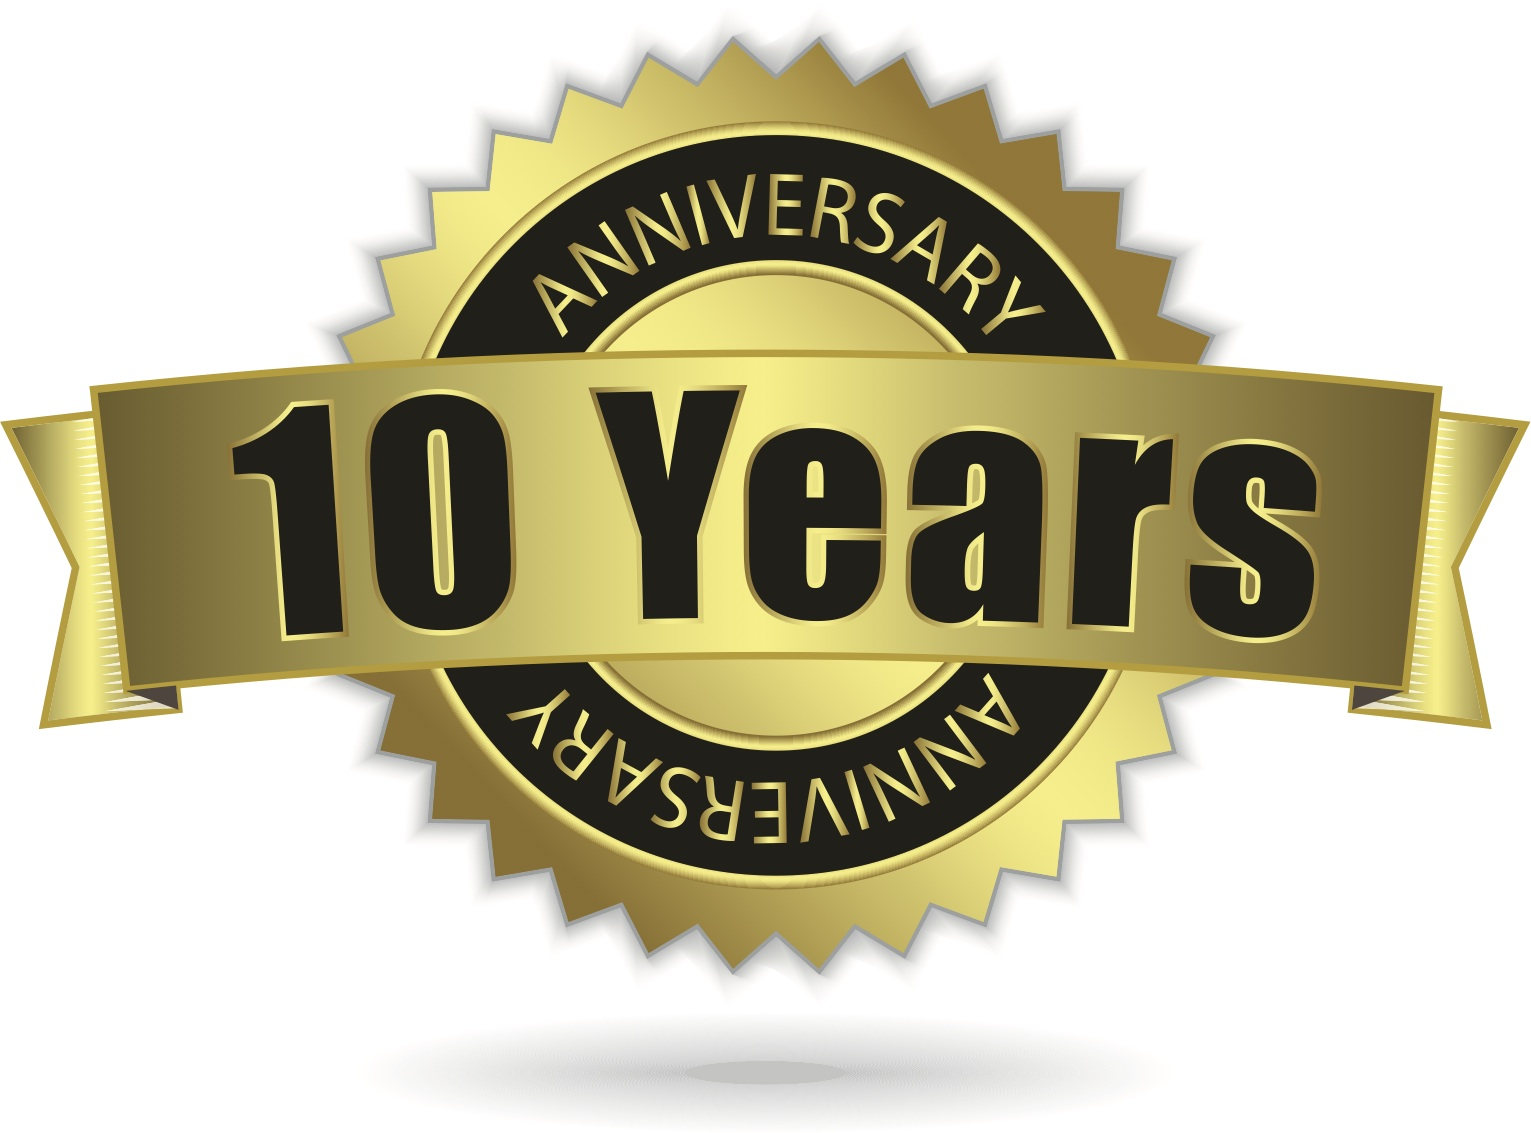 10th anniversary clipart free vector royalty free download Free 10th Anniversary Cliparts, Download Free Clip Art, Free Clip ... vector royalty free download